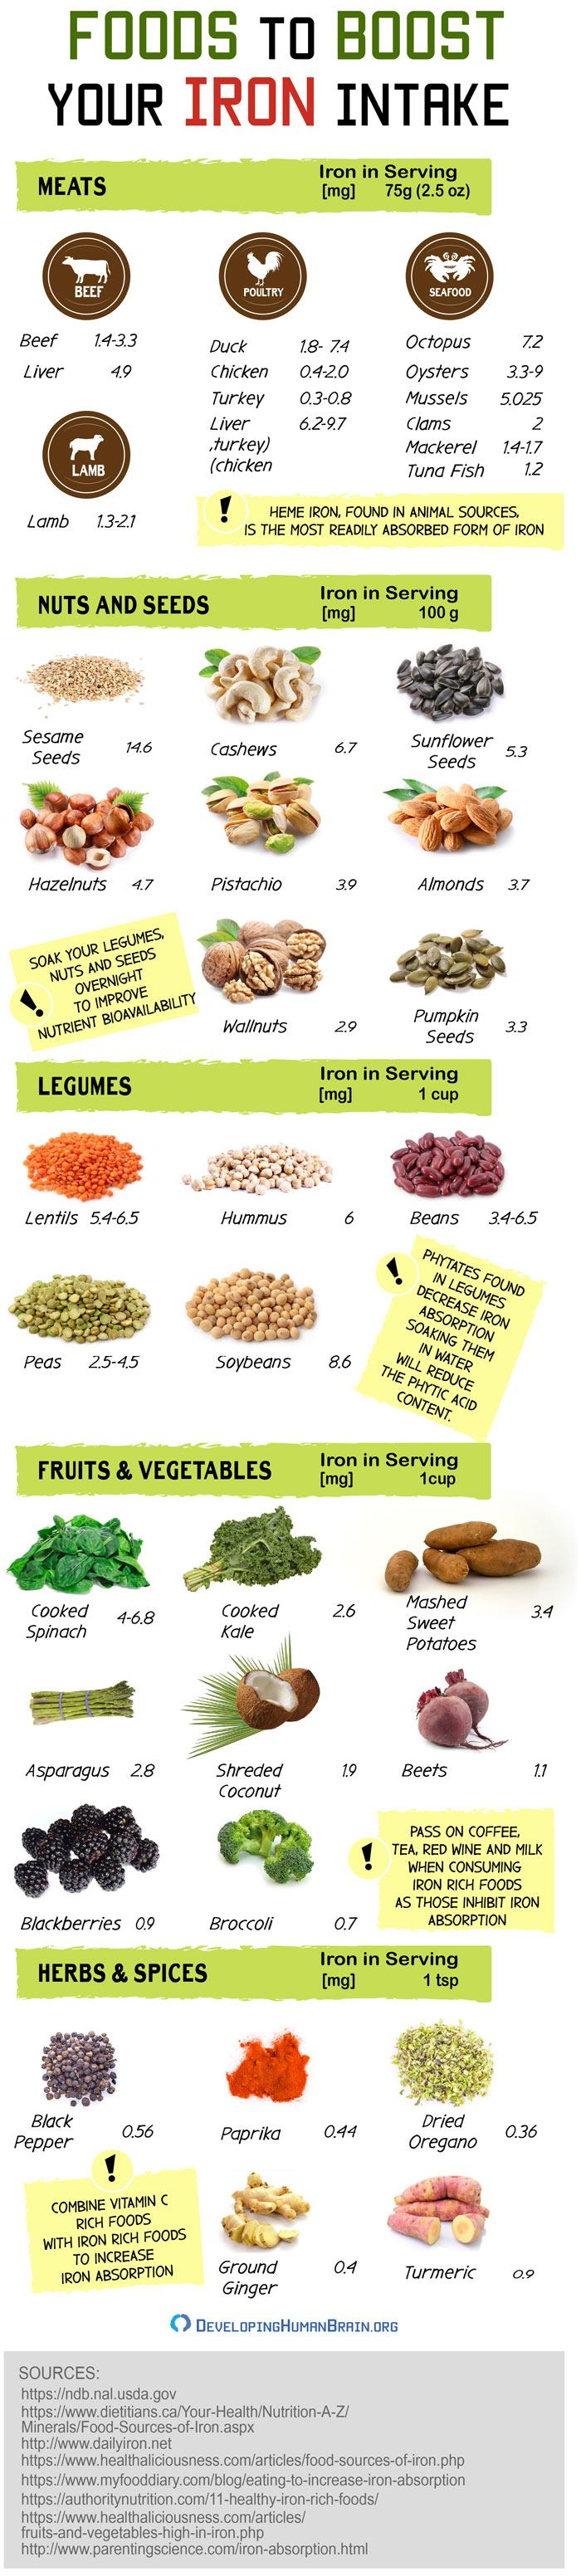 iron rich foods infographic